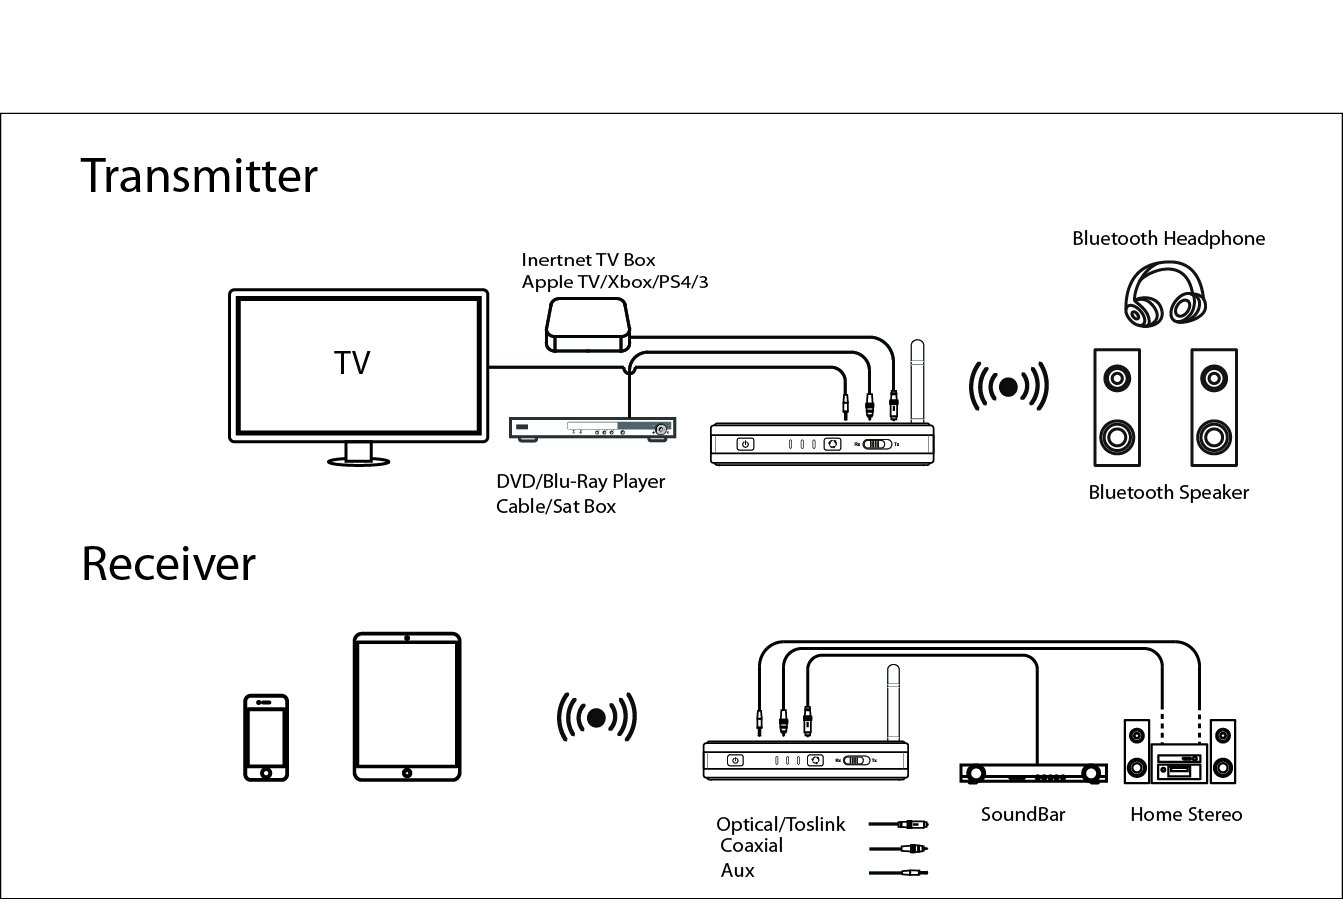 Nolan Trx Hd2 Wireless Home Hd Stereo Audio Transmitter Bluetooth Circuit Schematics On Instrumental Cable Wiring Diagram For Tv Theater Apple Ipad Speakers Headphones Electronics